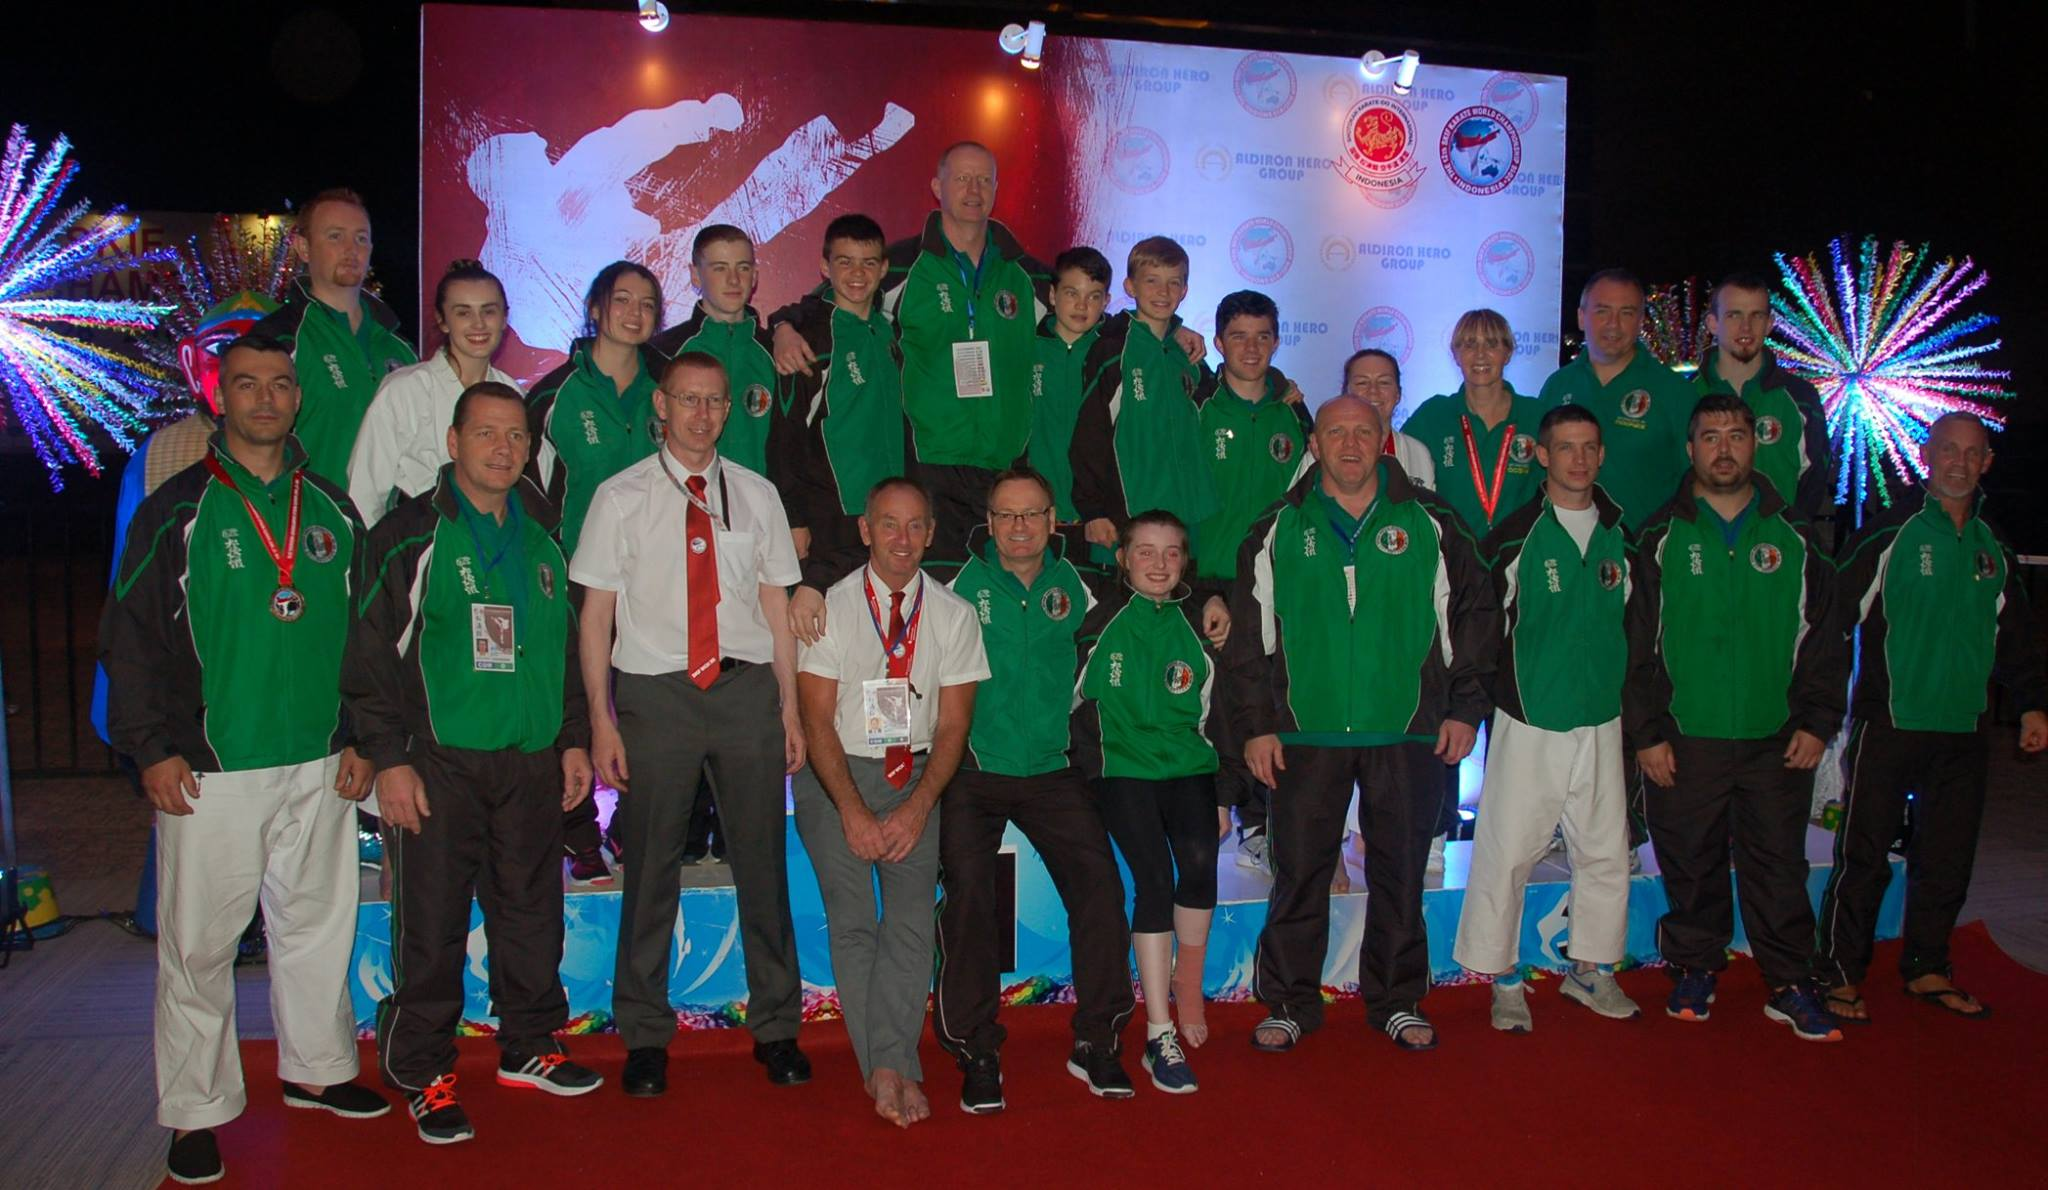 SKIF Ireland won an impressive 1 Gold, 2 Silver and 6 Bronze medals at the 12th SKIF World Championships in Jakarta Indonesia in August 2016